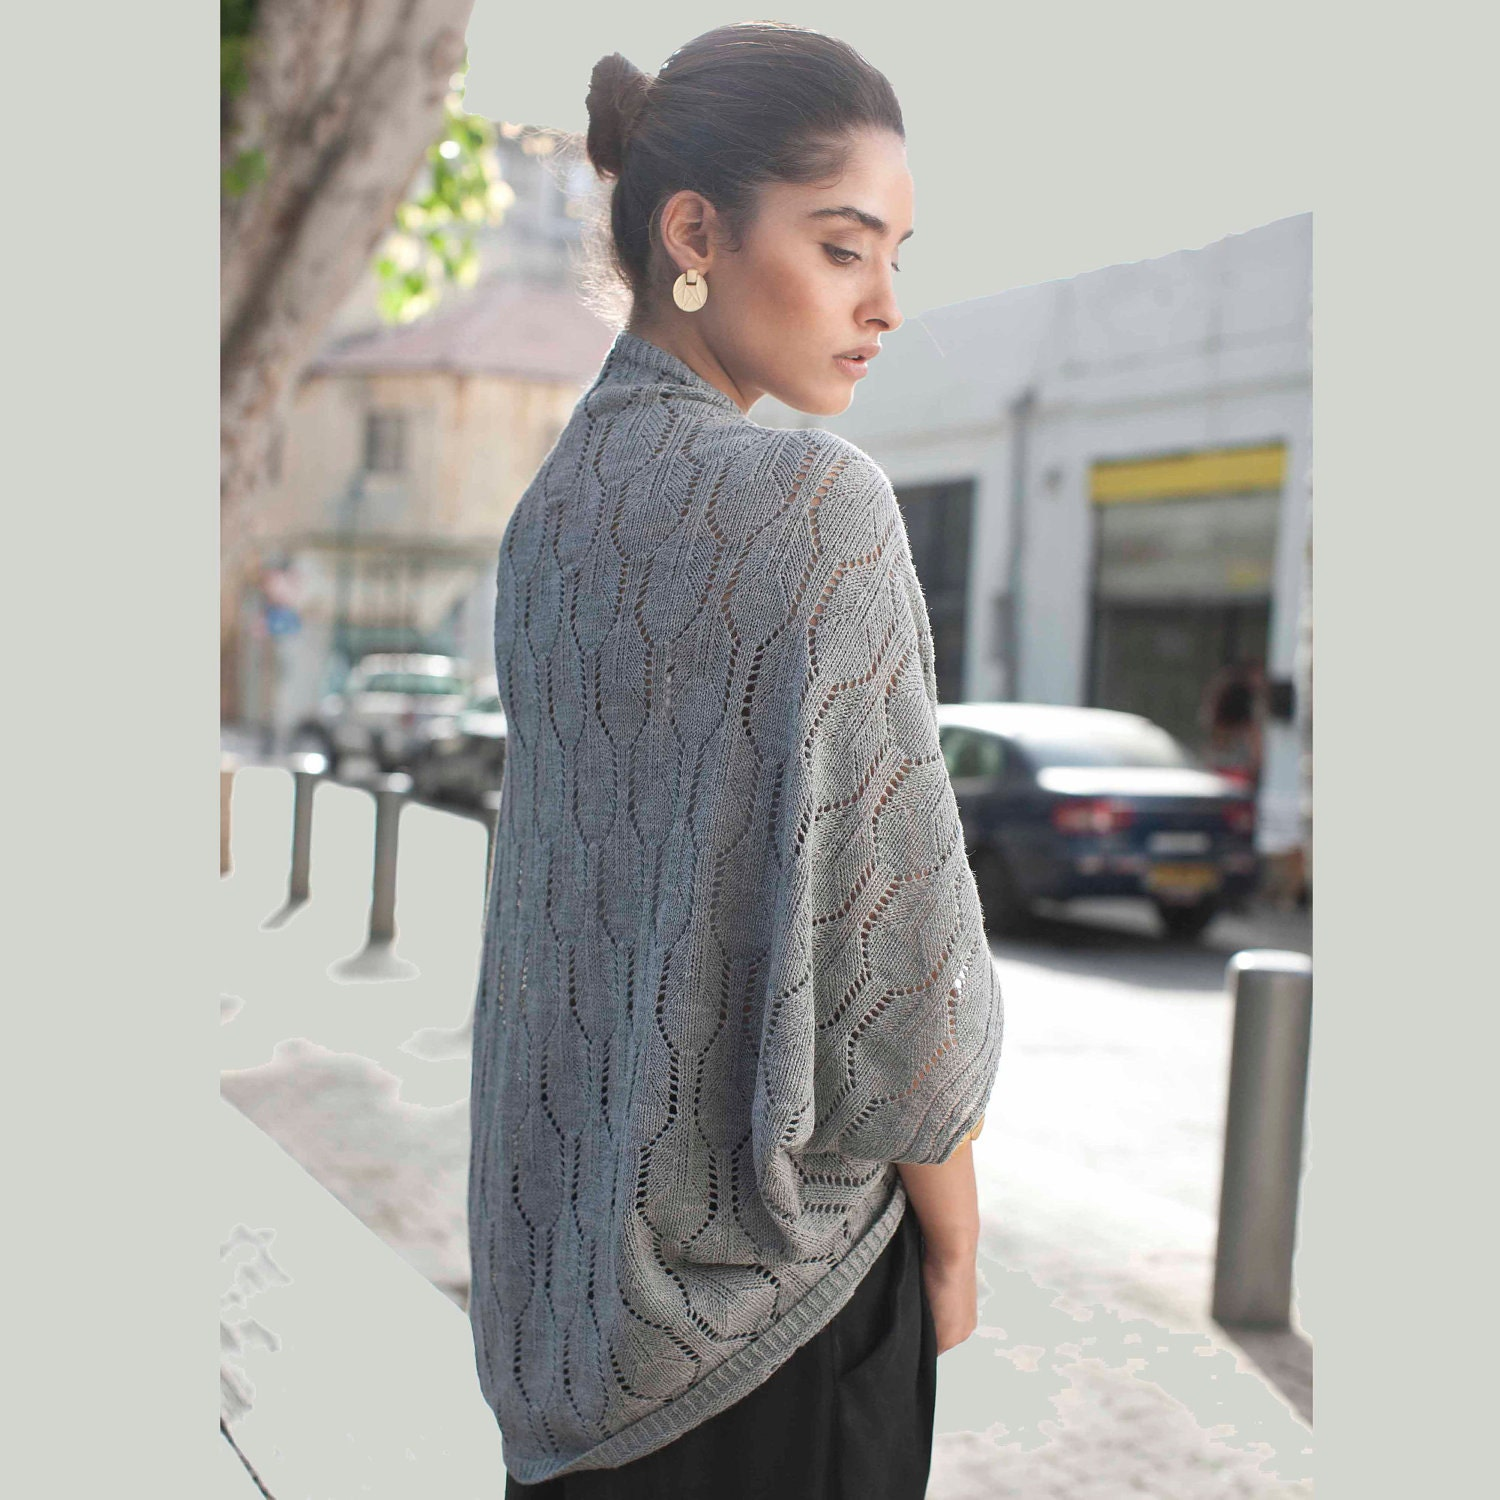 Women summer knitted cardigan, grey jacket, one size fits all - AndyVeEirn